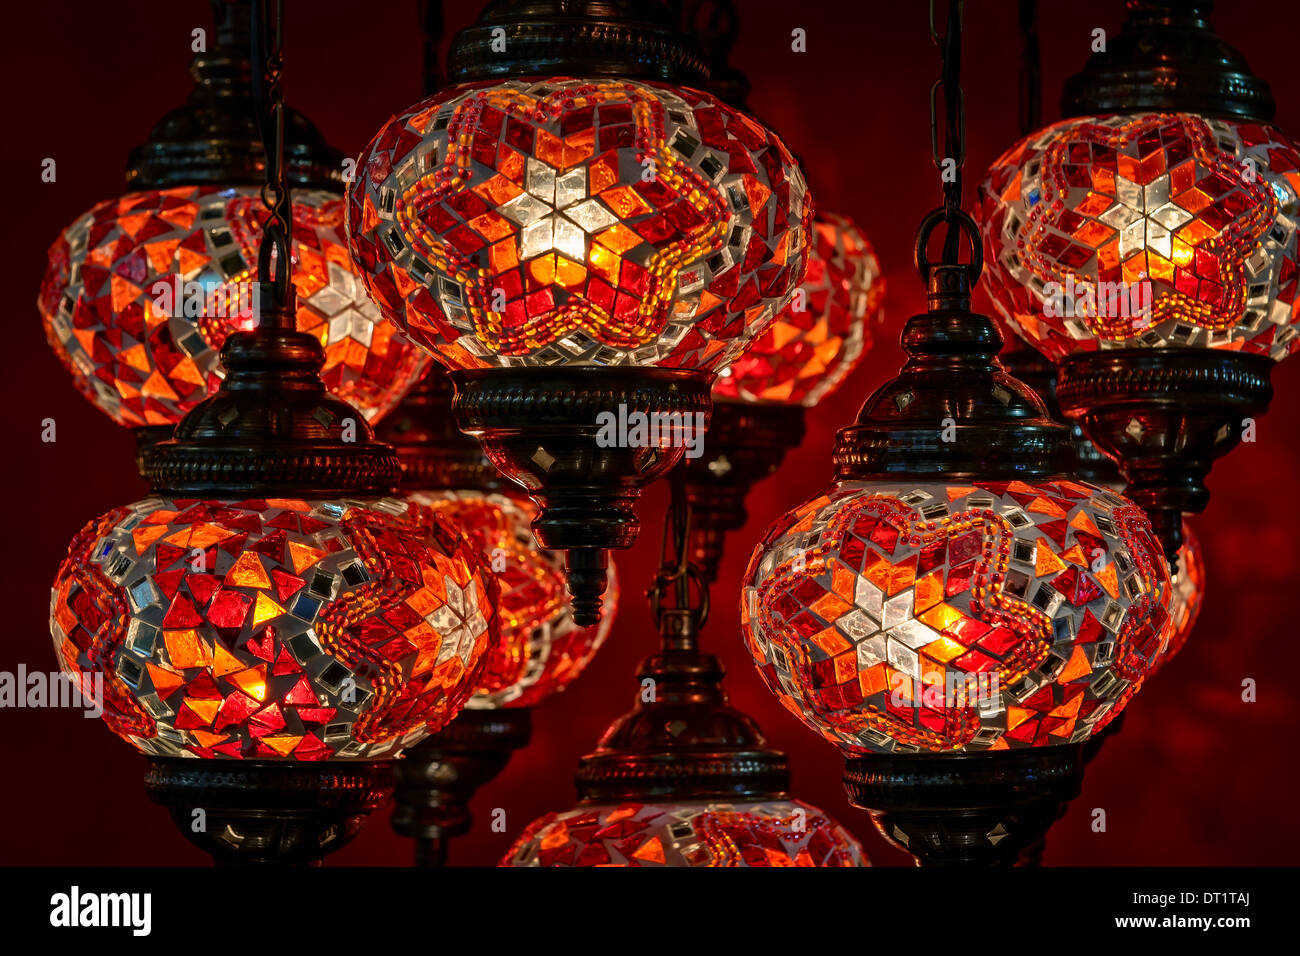 Close-up of decorative turkish lamps at the Grand Bazaar in Istanbul, Turkey. - Stock Image